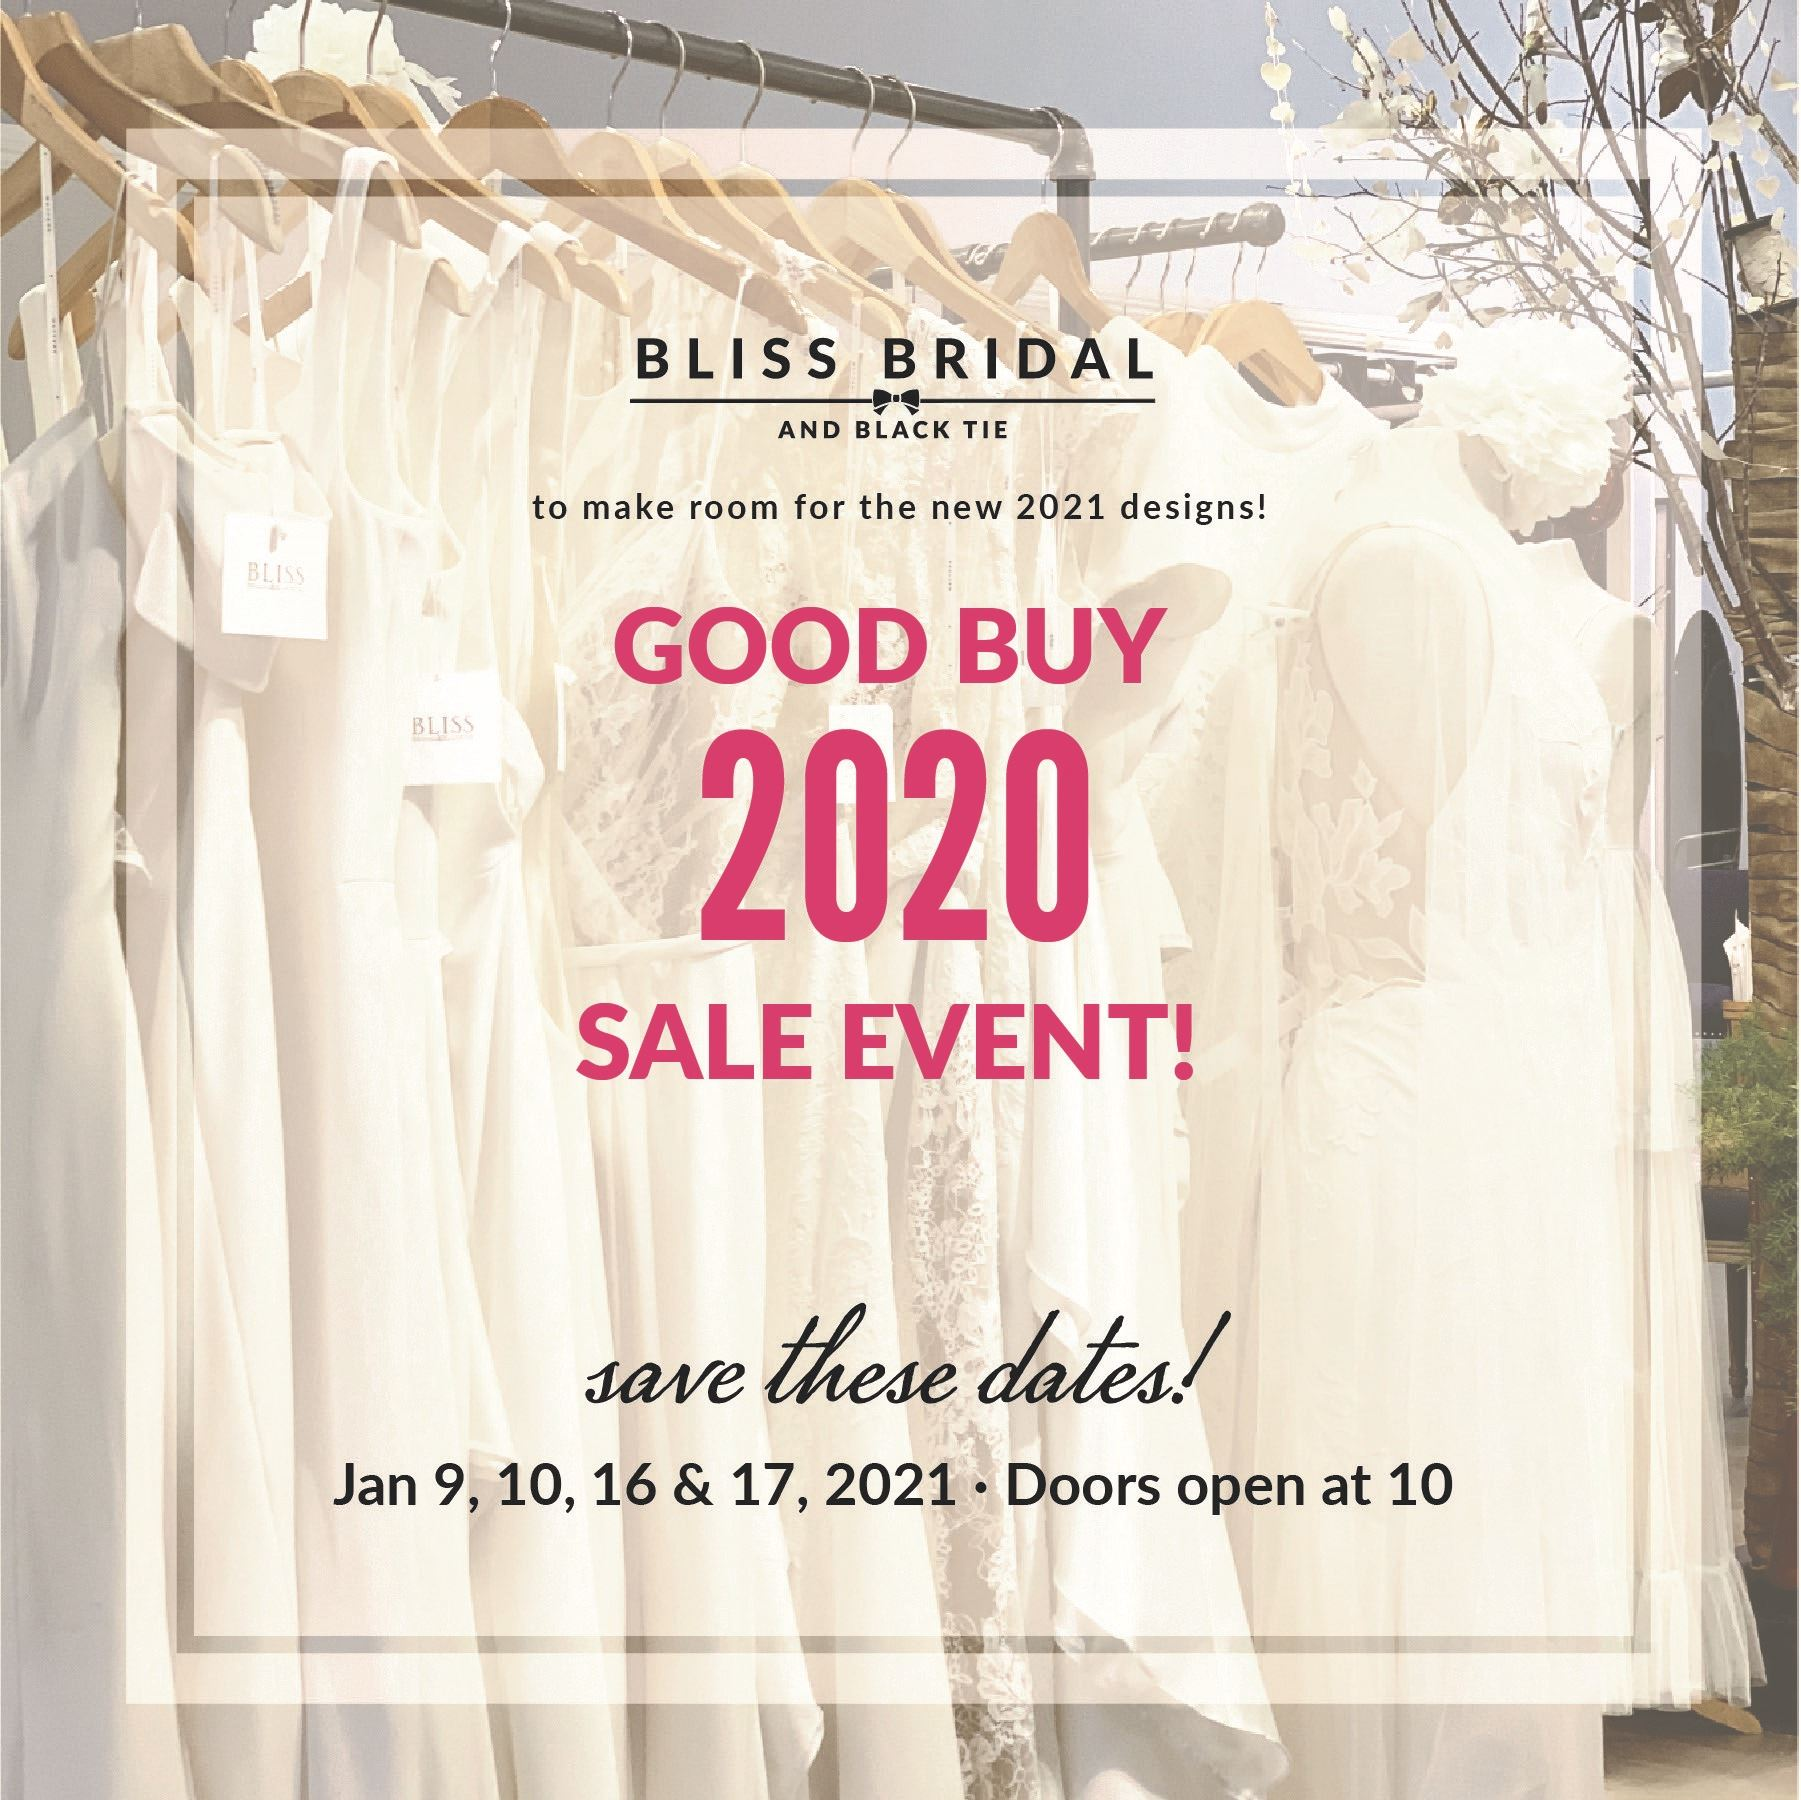 Good Buy 2020 Sale Event!